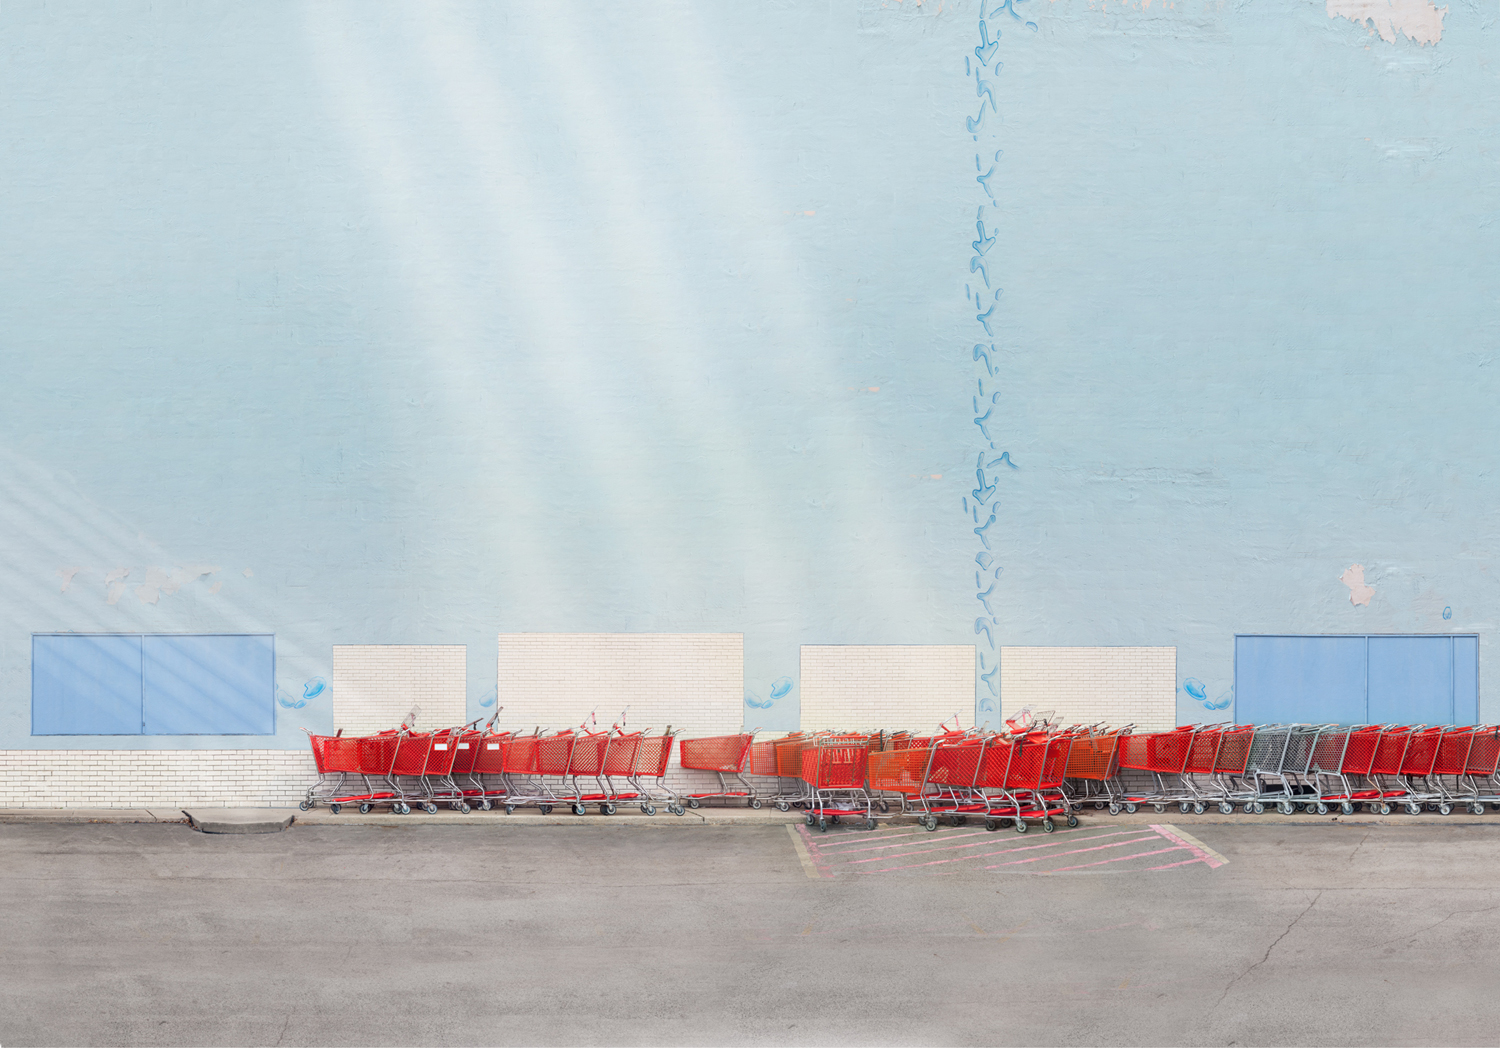 Carts,  25 x 35 inches, archival pigment print, 2014